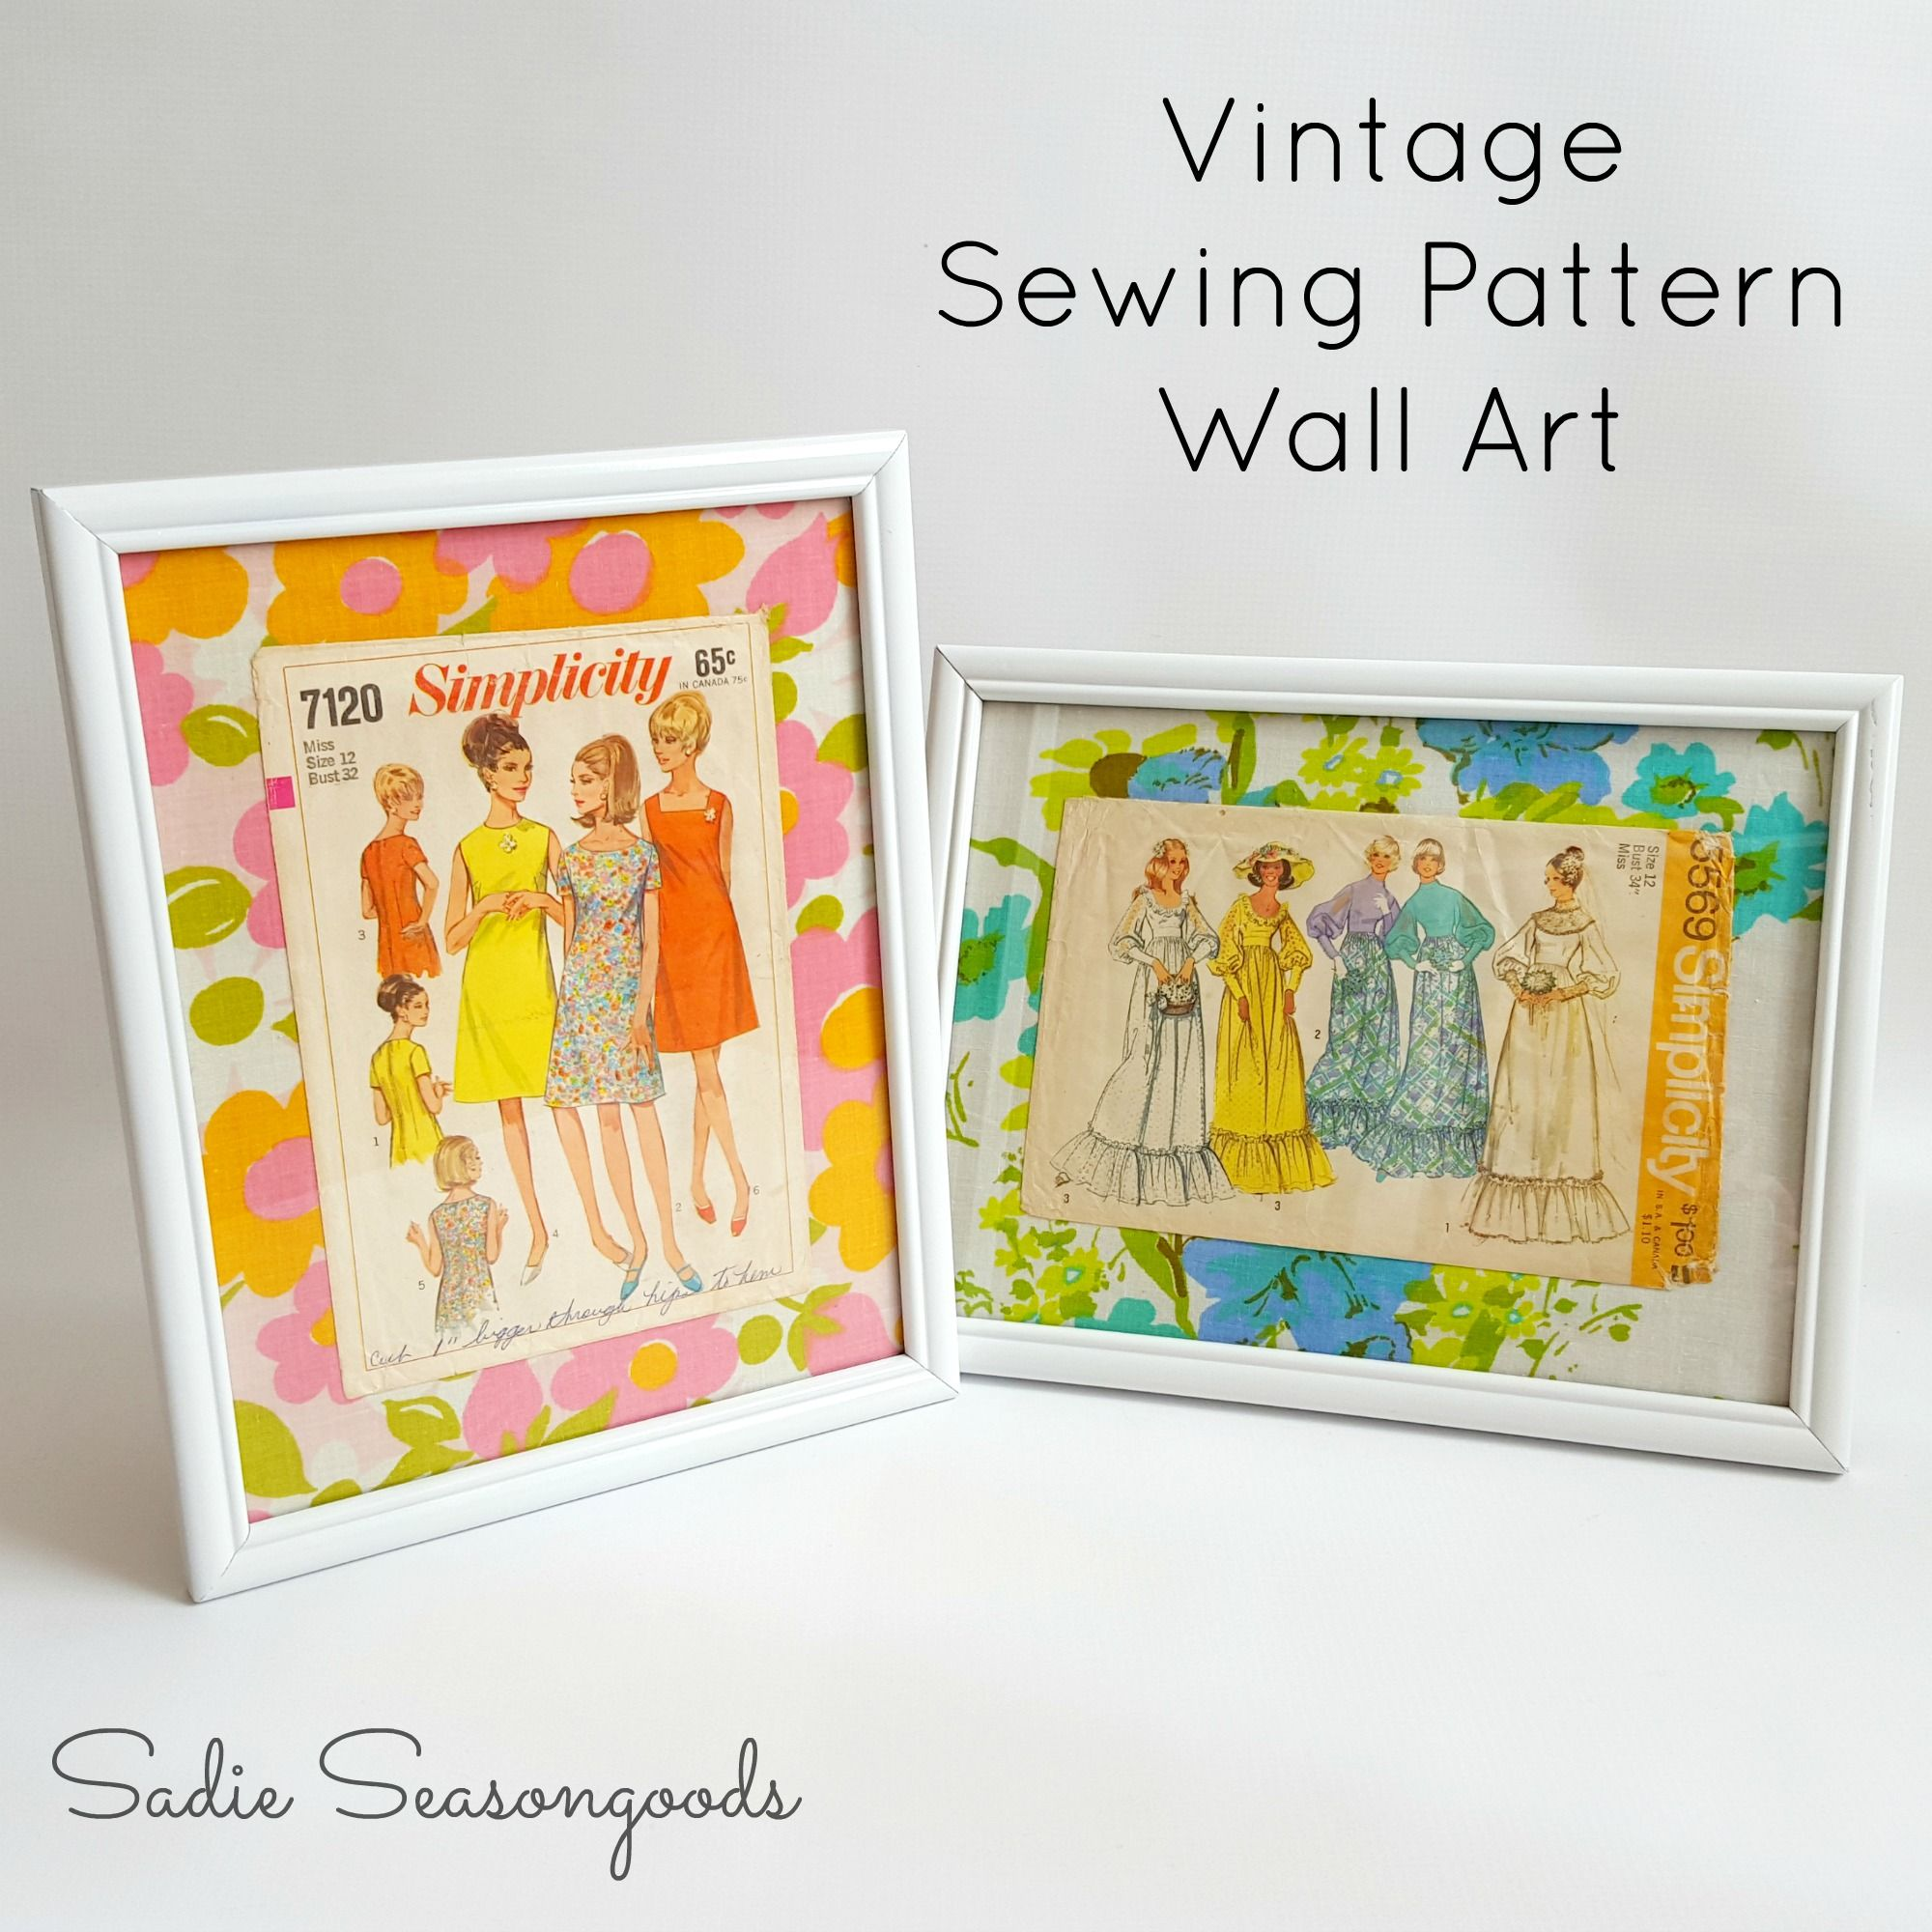 Fashion Wall Art using Repurposed Vintage Sewing Patterns | Sewing ...